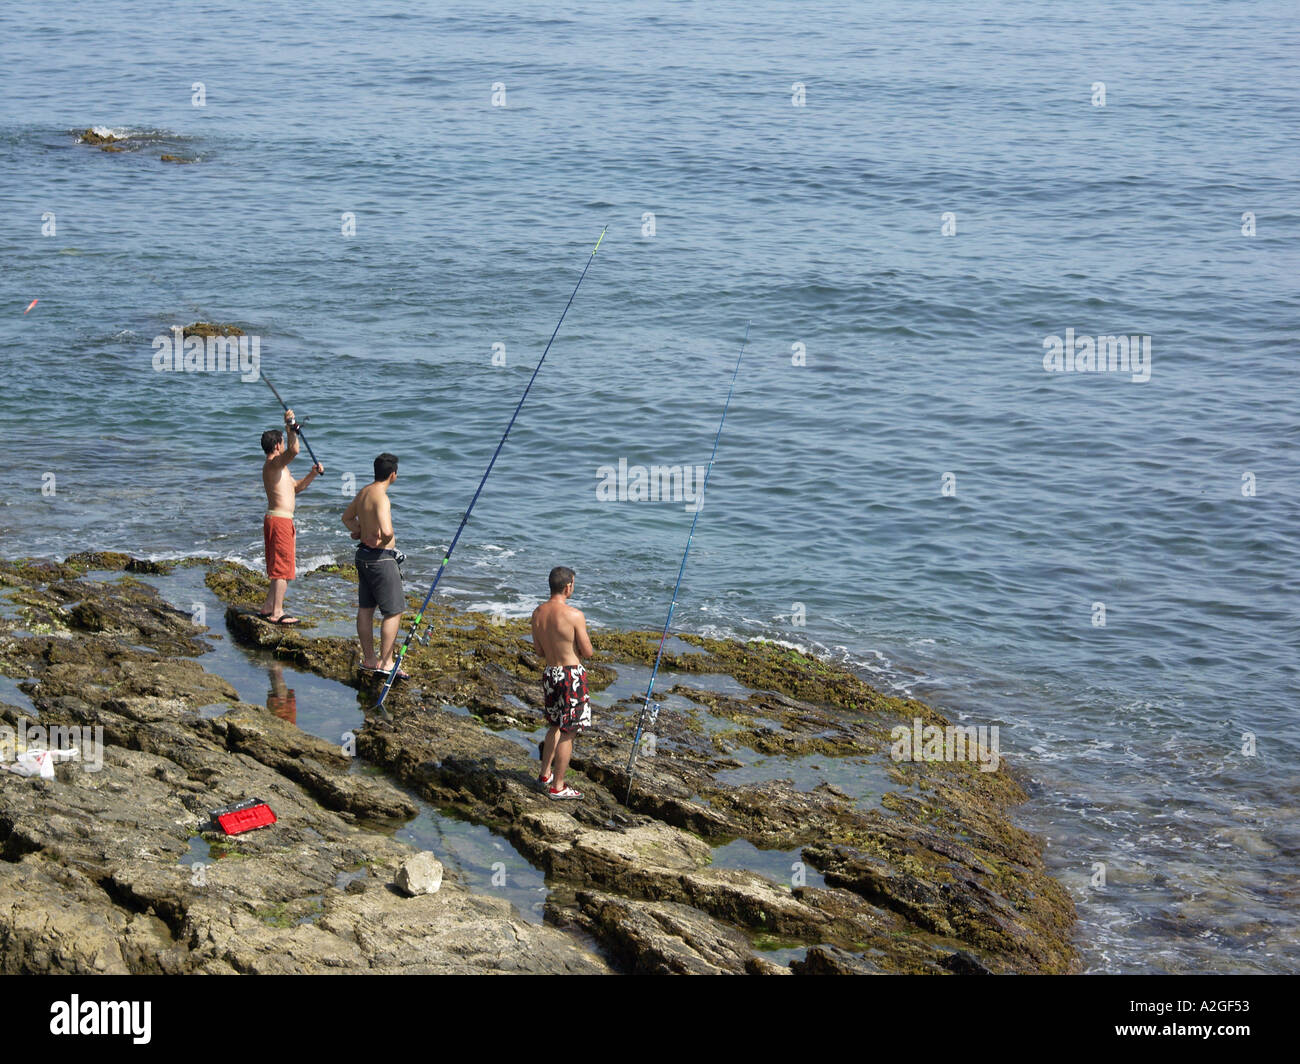 Young people fishing from the rocks el faro mijas costa for Videos of people fishing